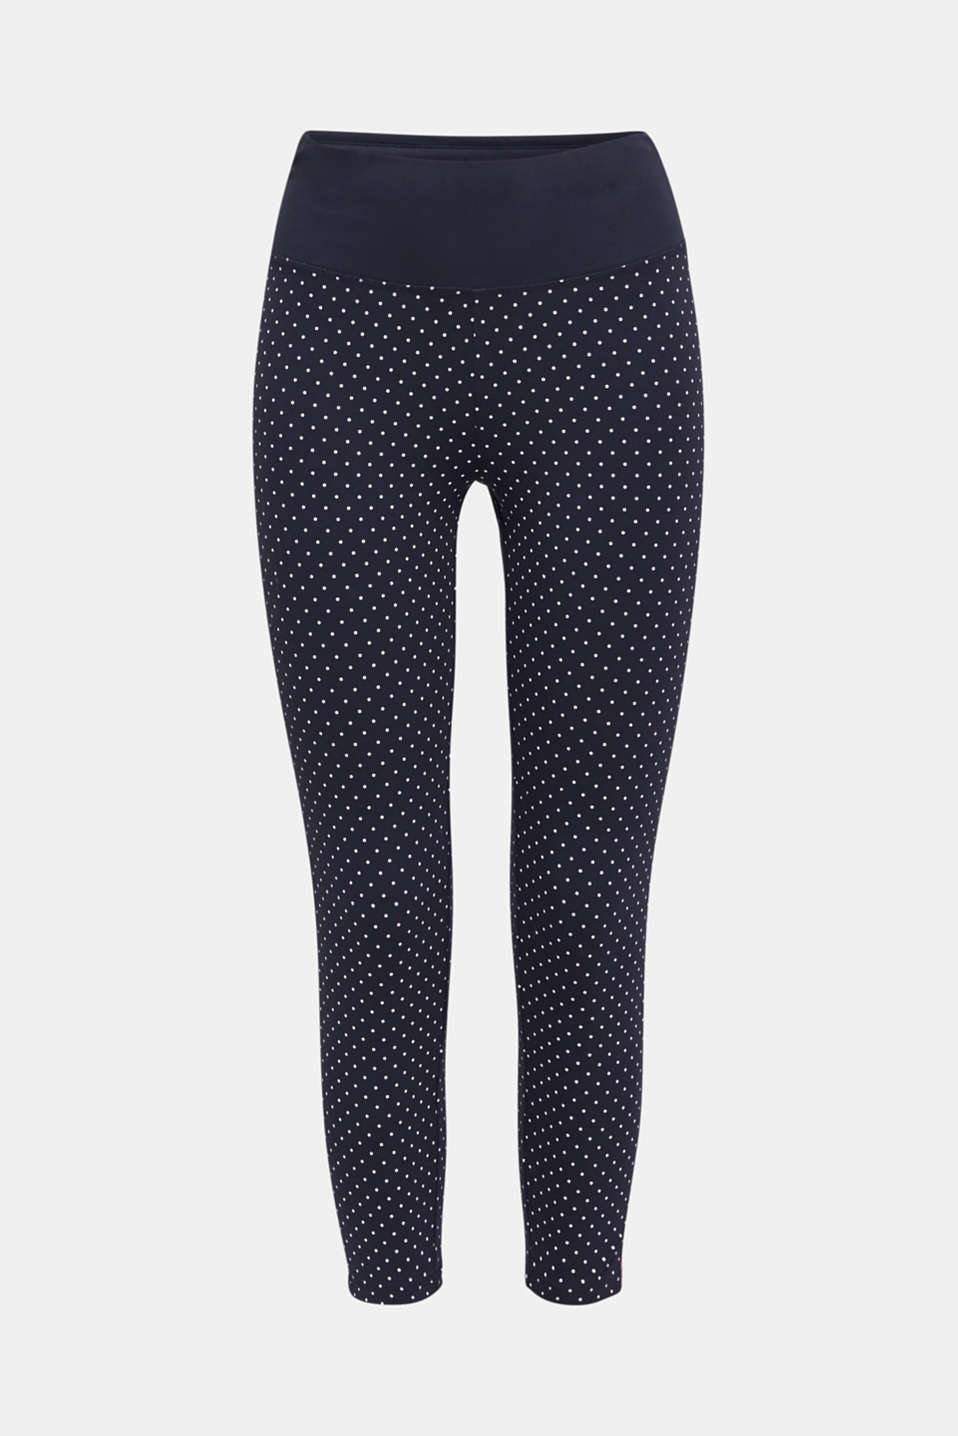 Leggings with a polka dot print, NAVY 3, detail image number 7